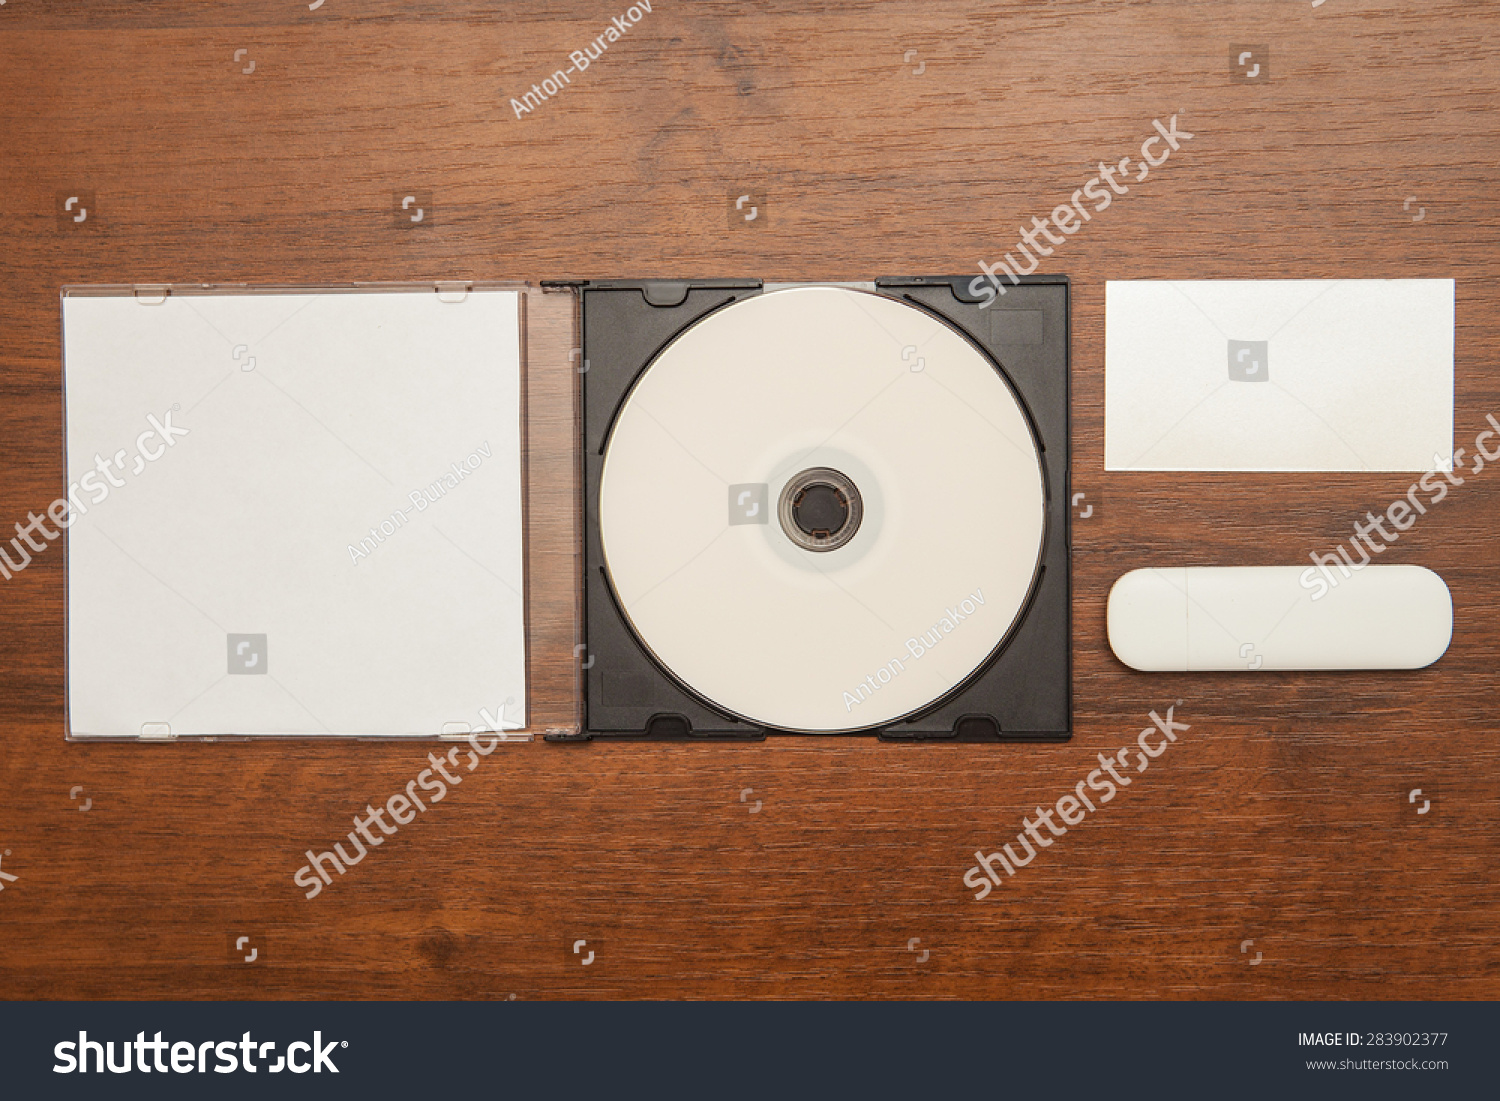 Dvd Rom Business Cards Flash Card Stock Photo (Royalty Free ...